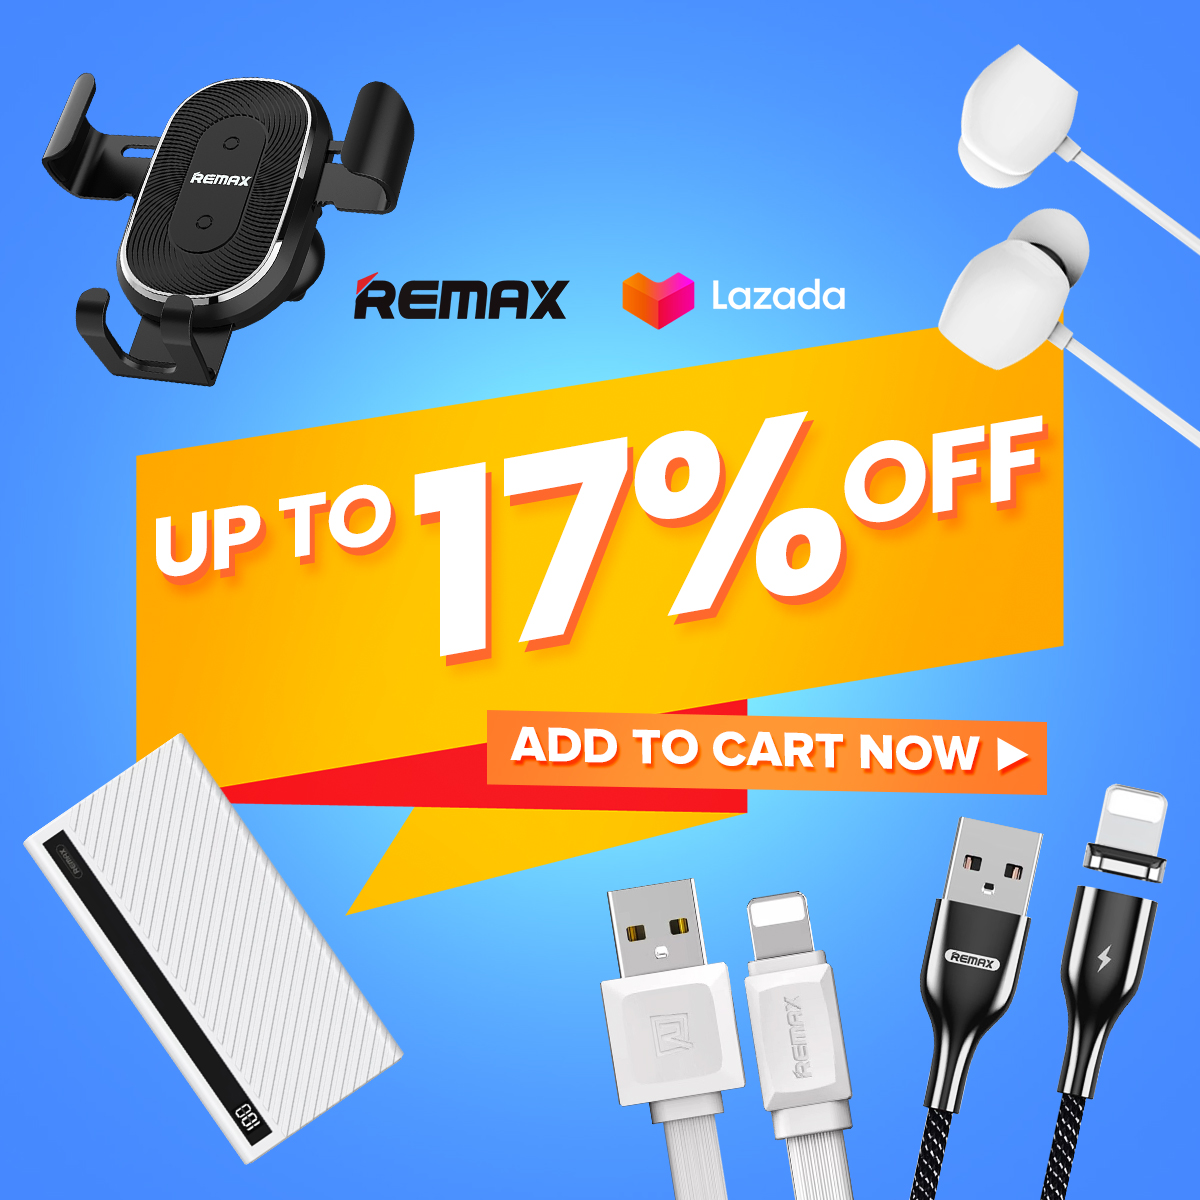 ‼️REMAX Up to 17% OFF‼️ 🛒SHOP NOW!➡  🛒SHOP NOW!➡   🚚Cash on Delivery 🚚Nationwide Delivery  **Price is subject to change without prior notice  #LazadaFinds #LazadaPH #LazadaxKathryn #LazadaxLMH  #payday #NasaLazadaYan #shoponline